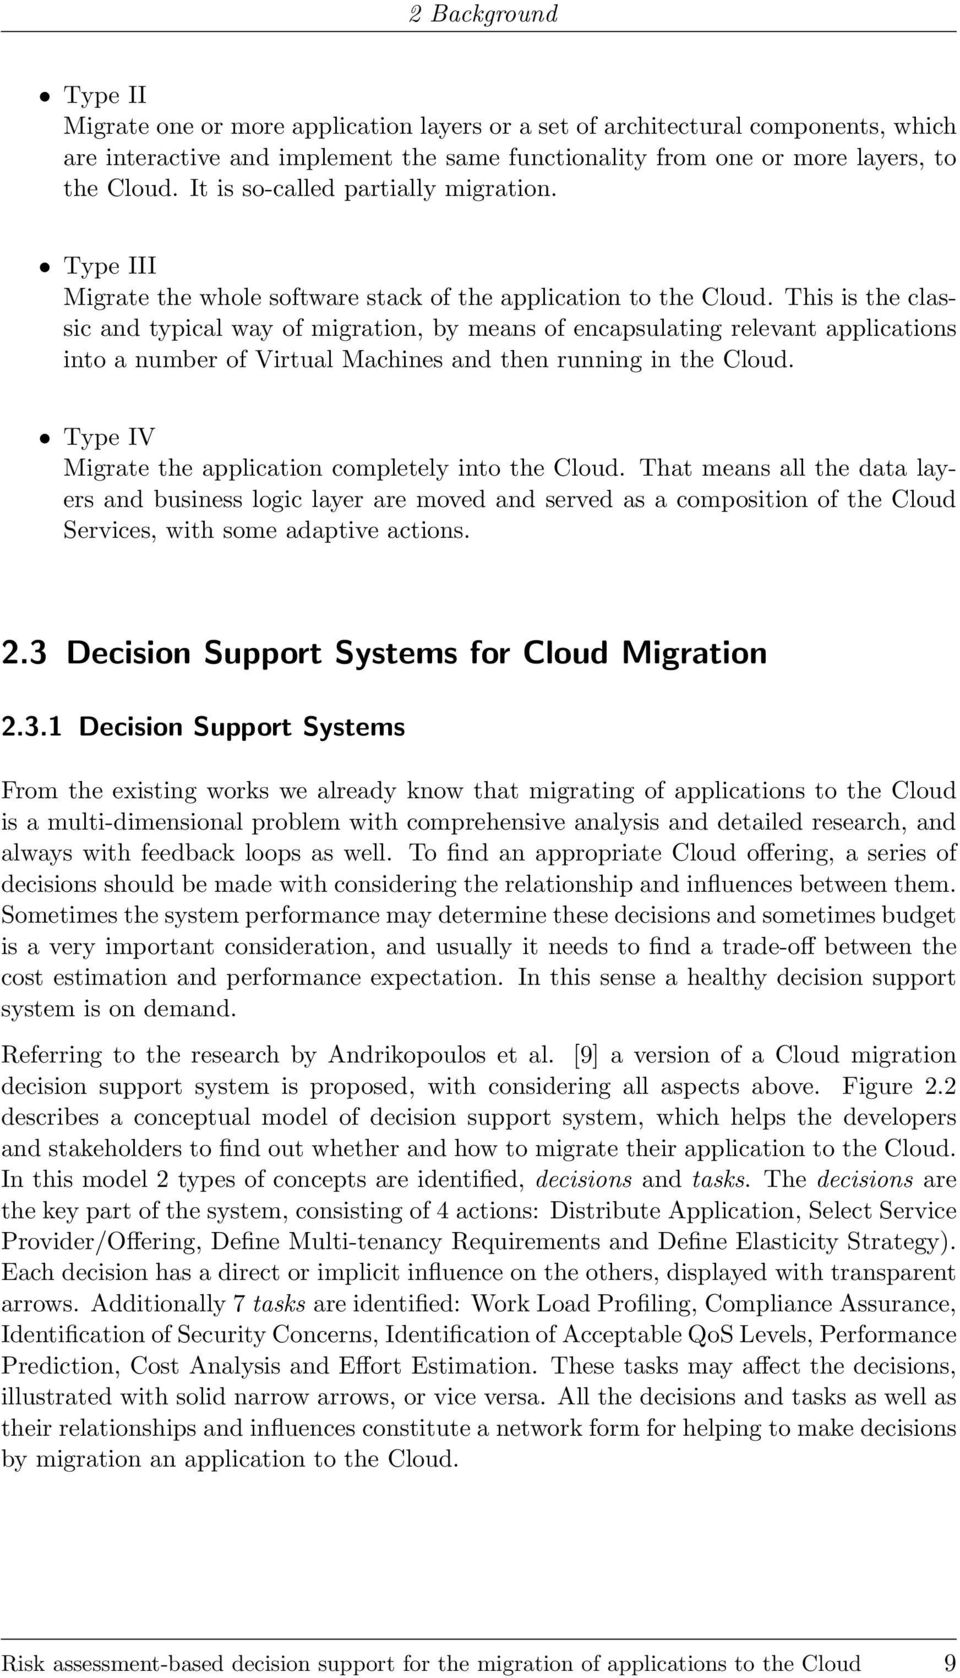 This is the classic and typical way of migration, by means of encapsulating relevant applications into a number of Virtual Machines and then running in the Cloud.